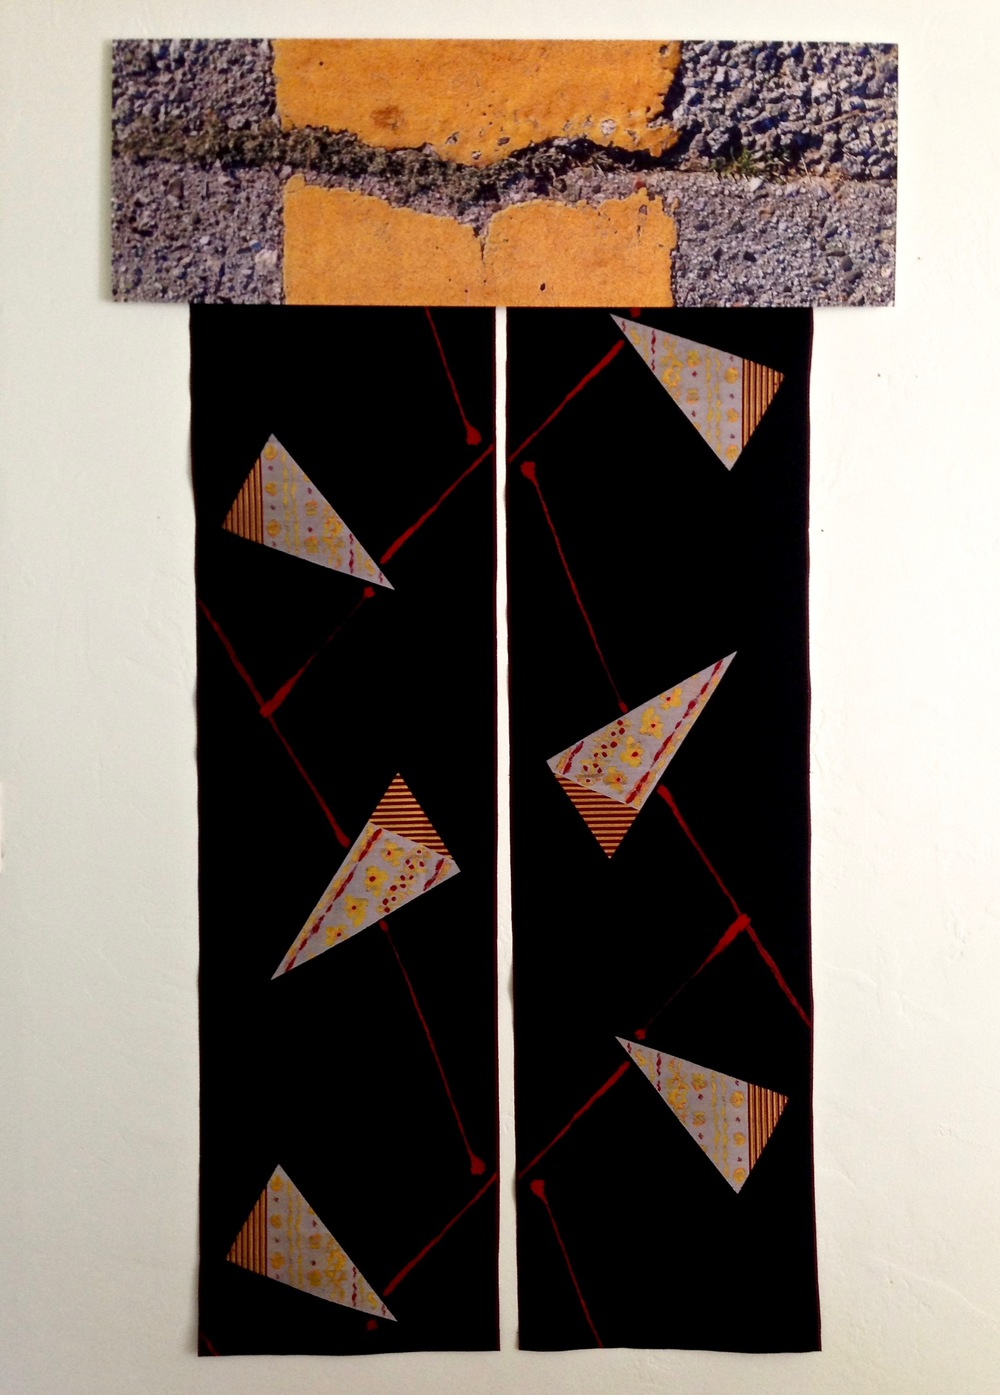 HONORABLE MENTION - Crosswalk and Floating Triangles (2016) from the Wabi Sabi Noren Series | Zora Neuhold-Huber | Photograph on wood, antique embroidered kimono fabric | 36x62"